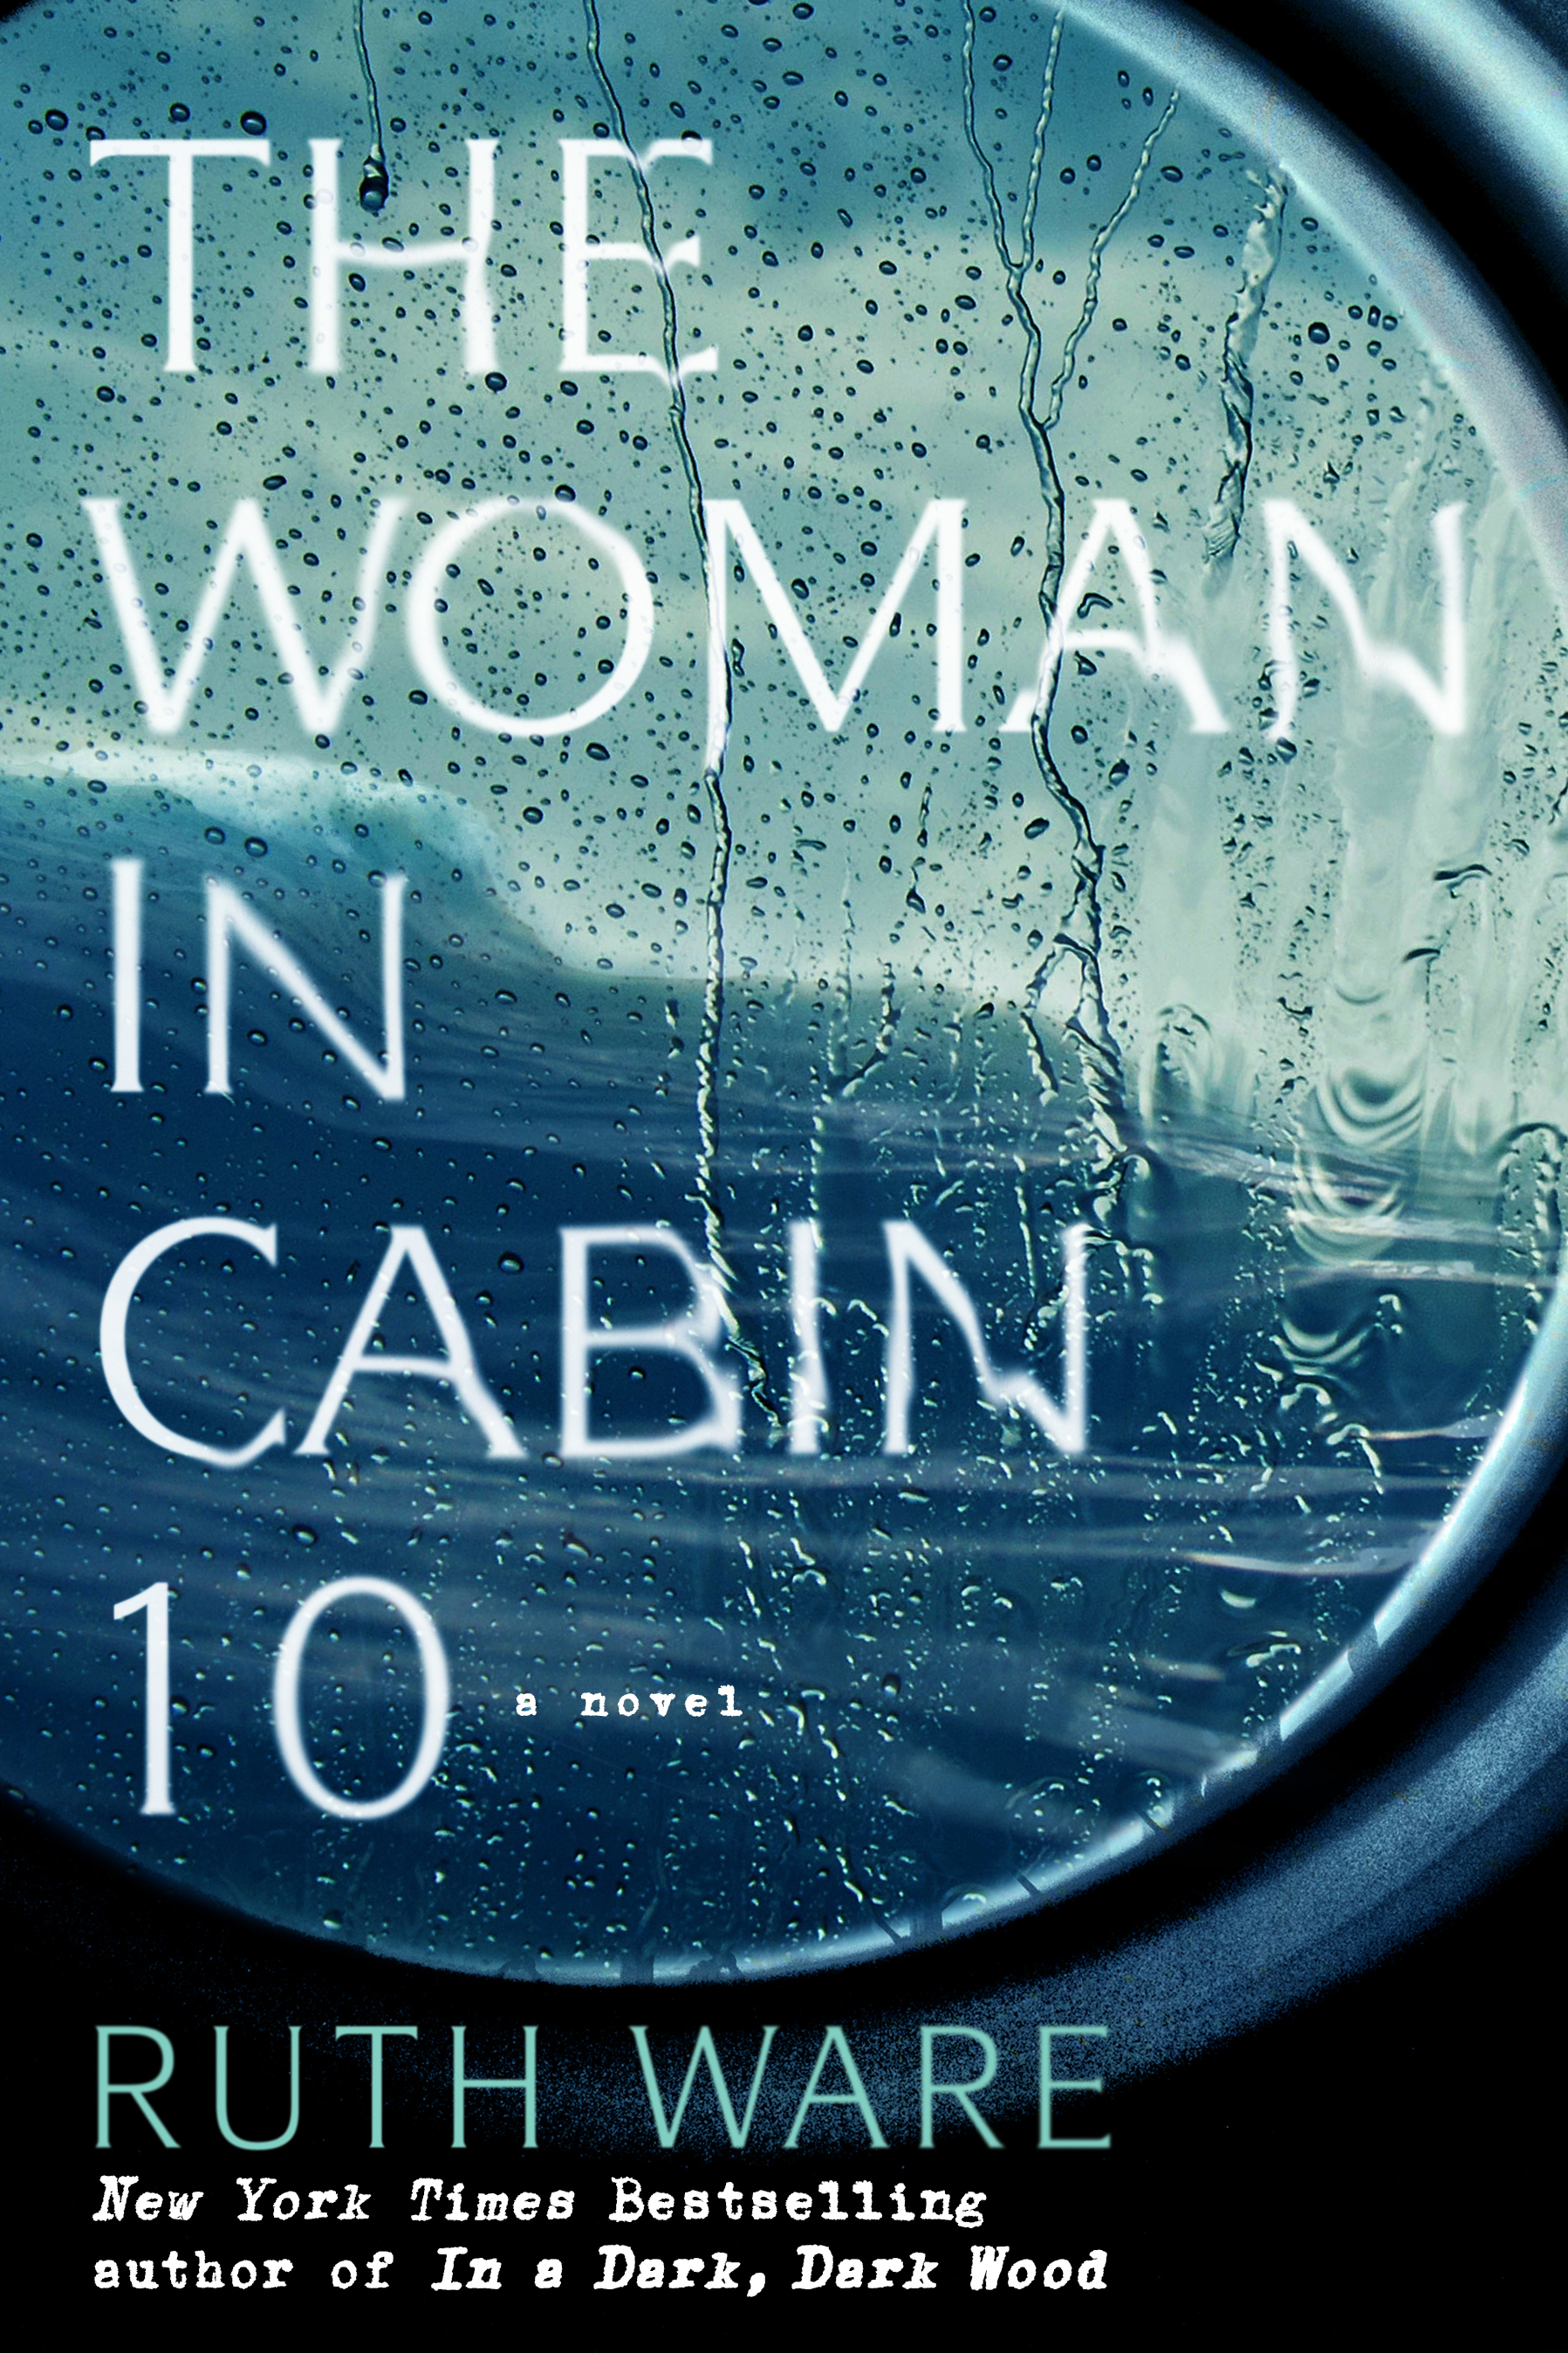 The Woman in Cabin 10- Ruth Ware